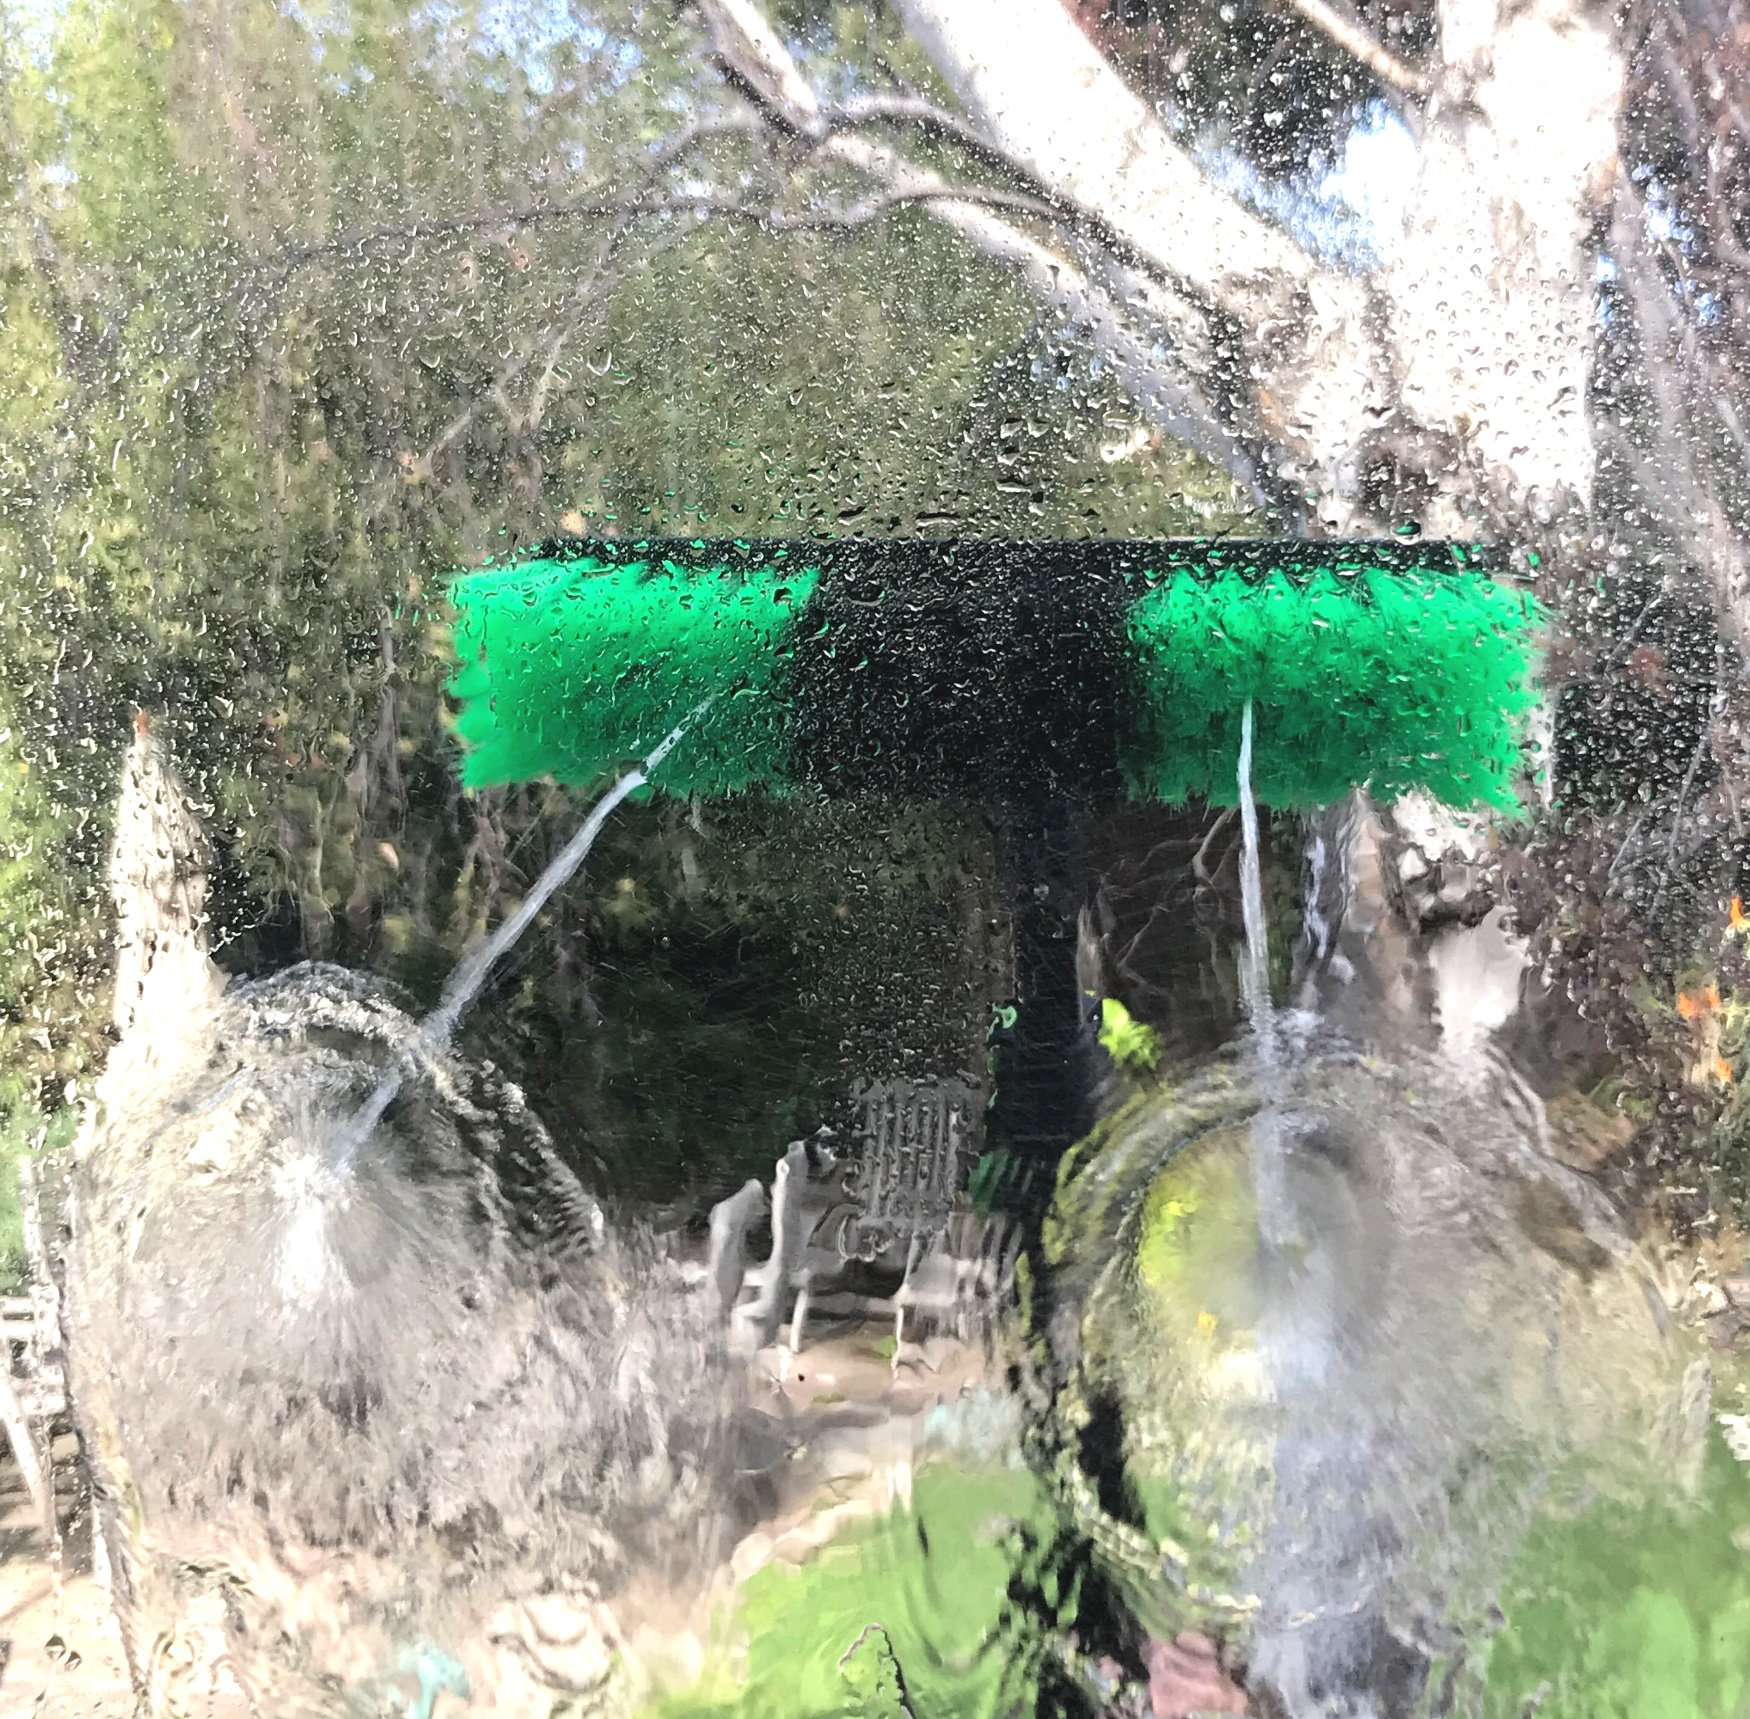 30 ft Water Fed Pole, Window & Solar Panel Cleaning Tool with Brush & Squeegee AquaSpray by EquipMaxx by EquipMaxx AquaSpray (Image #2)